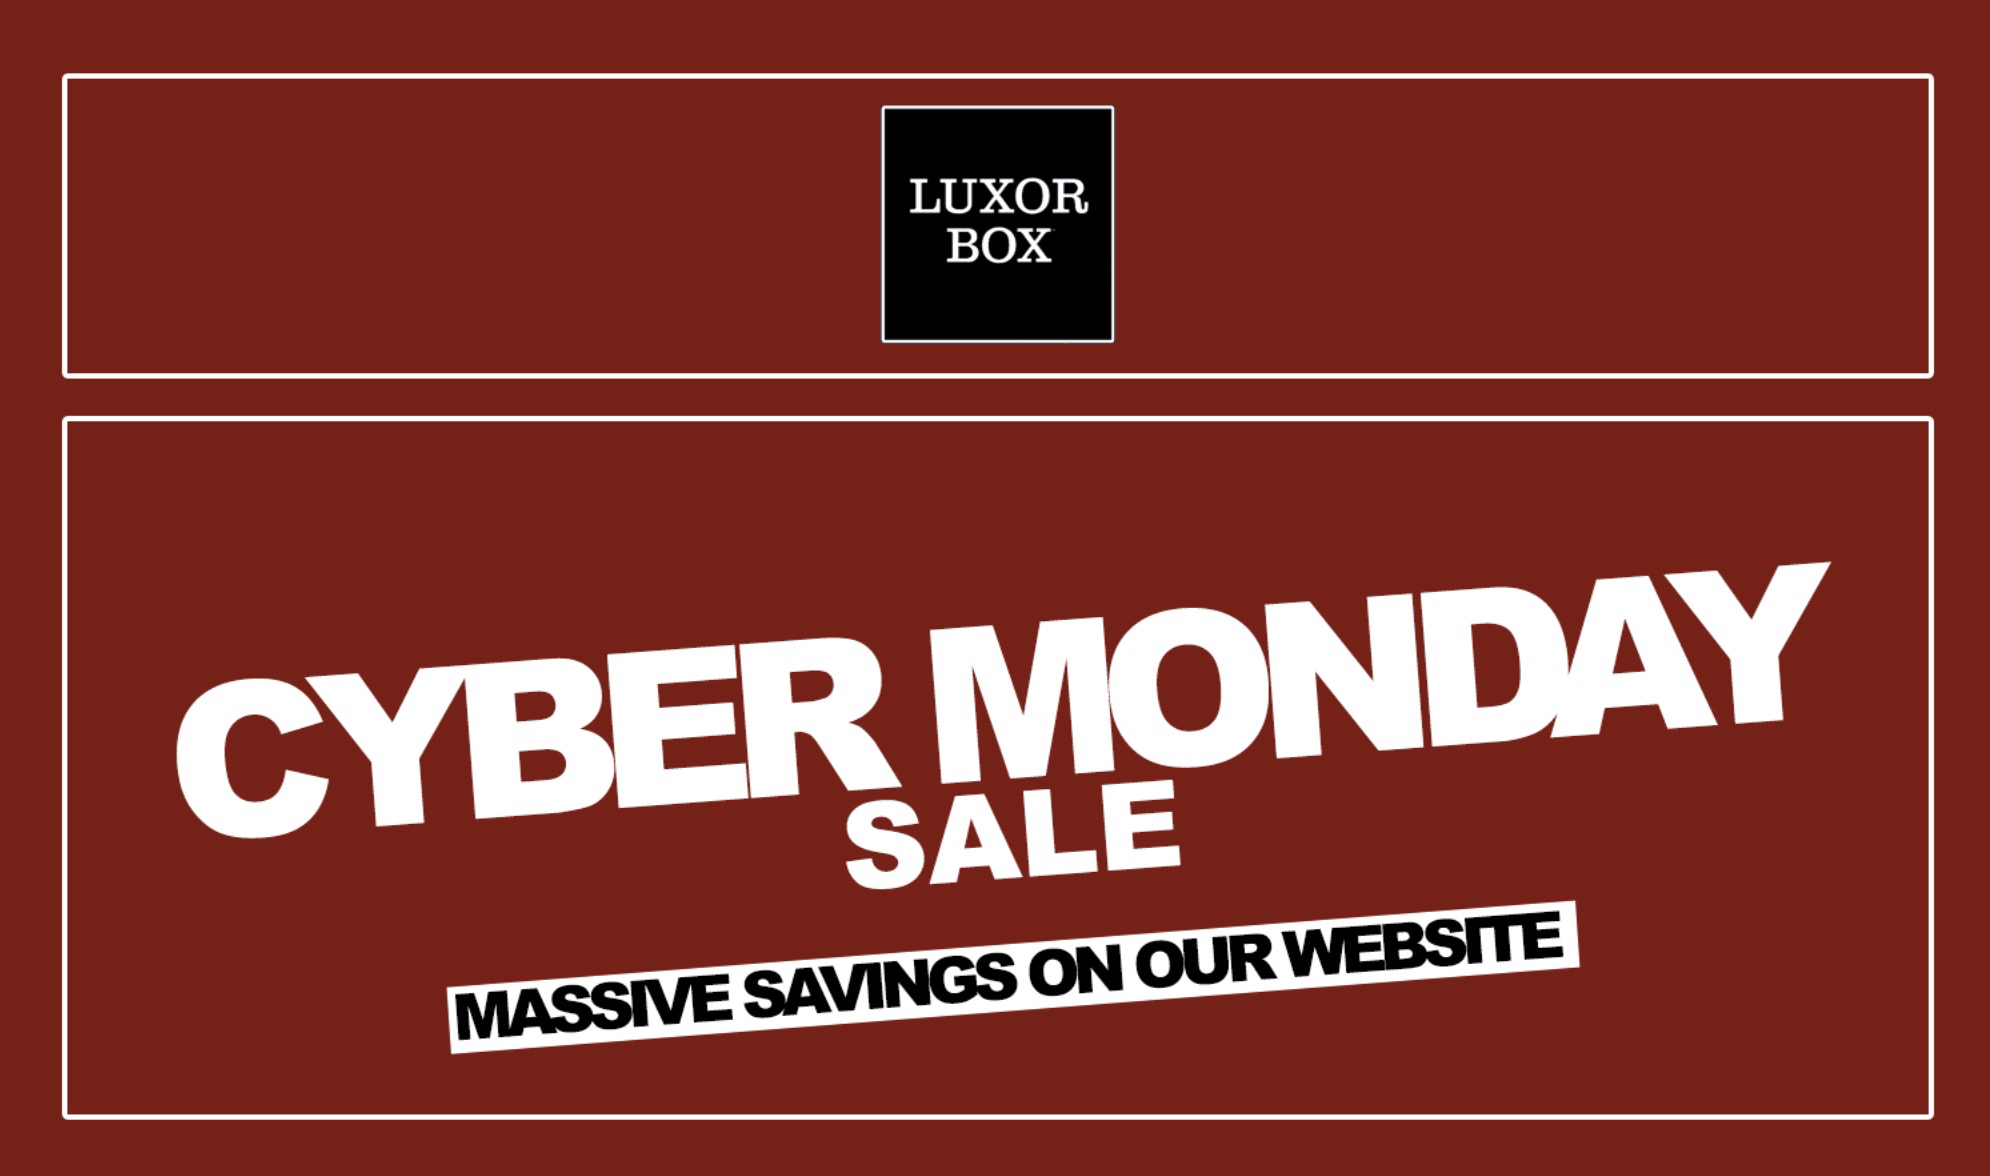 Luxor Box 2018 Cyber Monday Subscription Sale: 10% Off All Subscriptions!